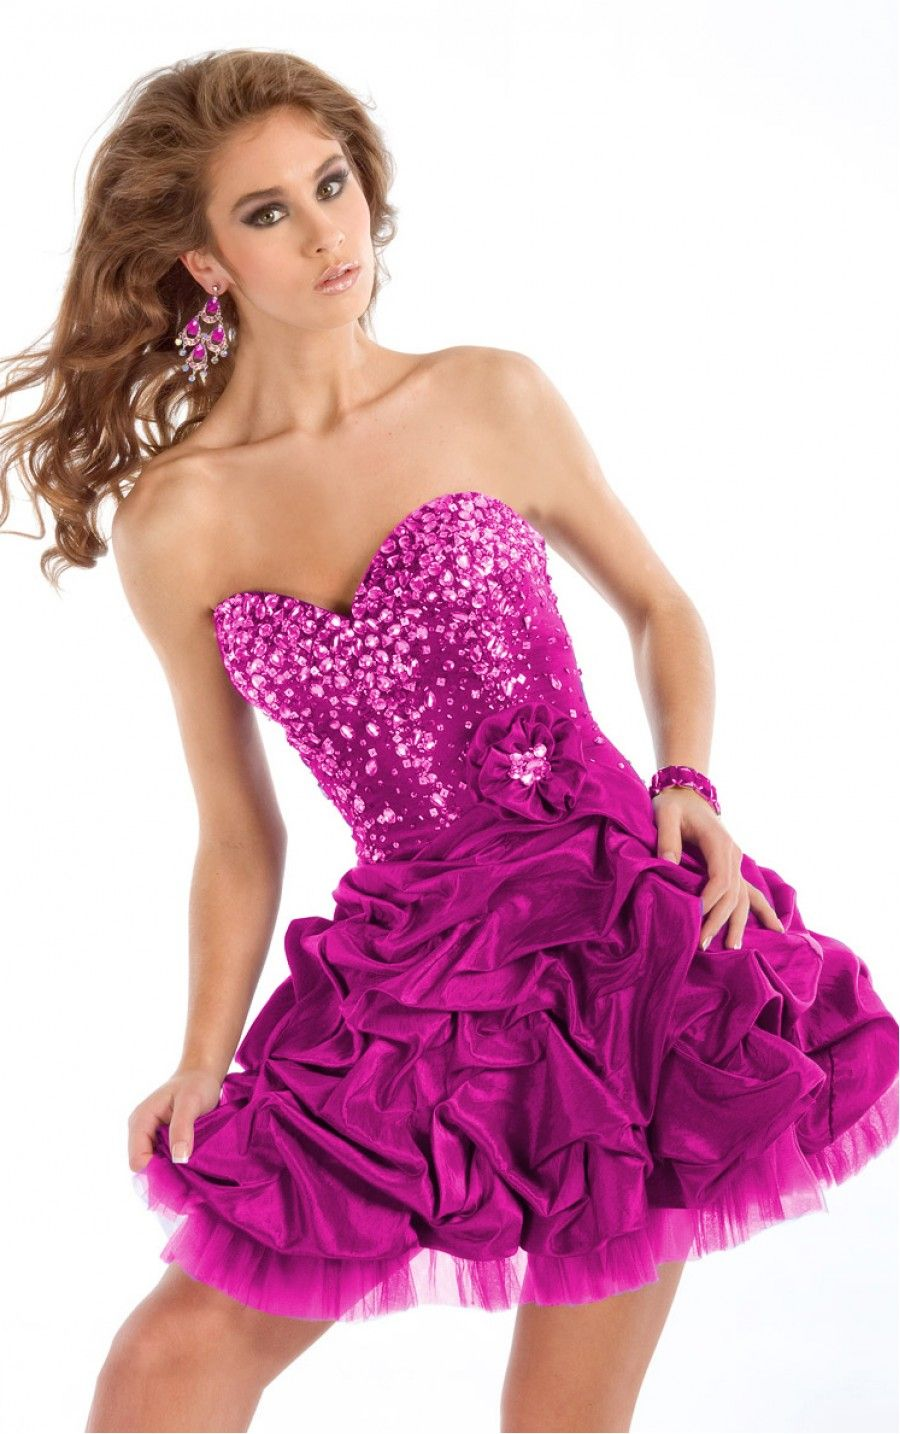 party dresses for teenagers - Google Search | Dresses | Pinterest ...